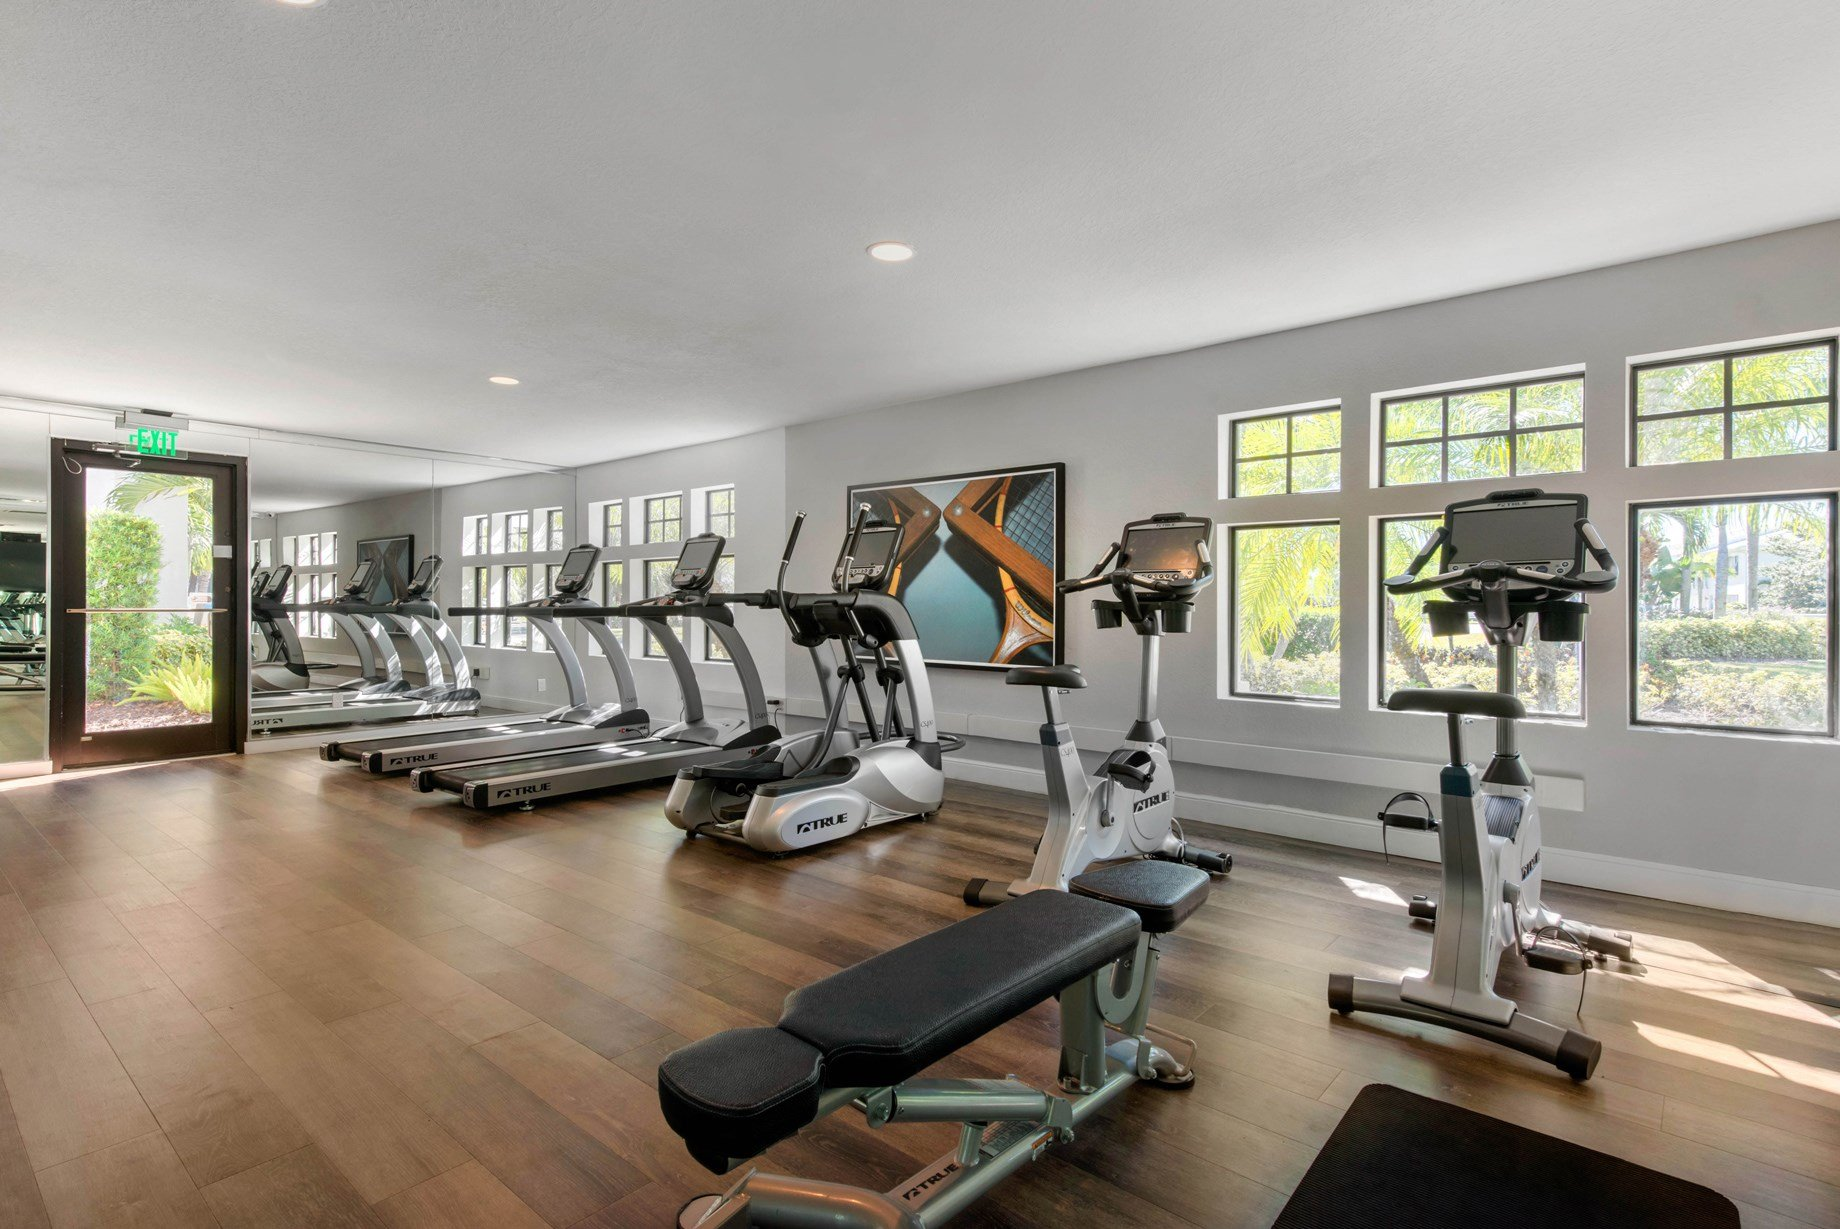 Fitness Center at Brantley Pines Apartments in Ft. Myers, FL